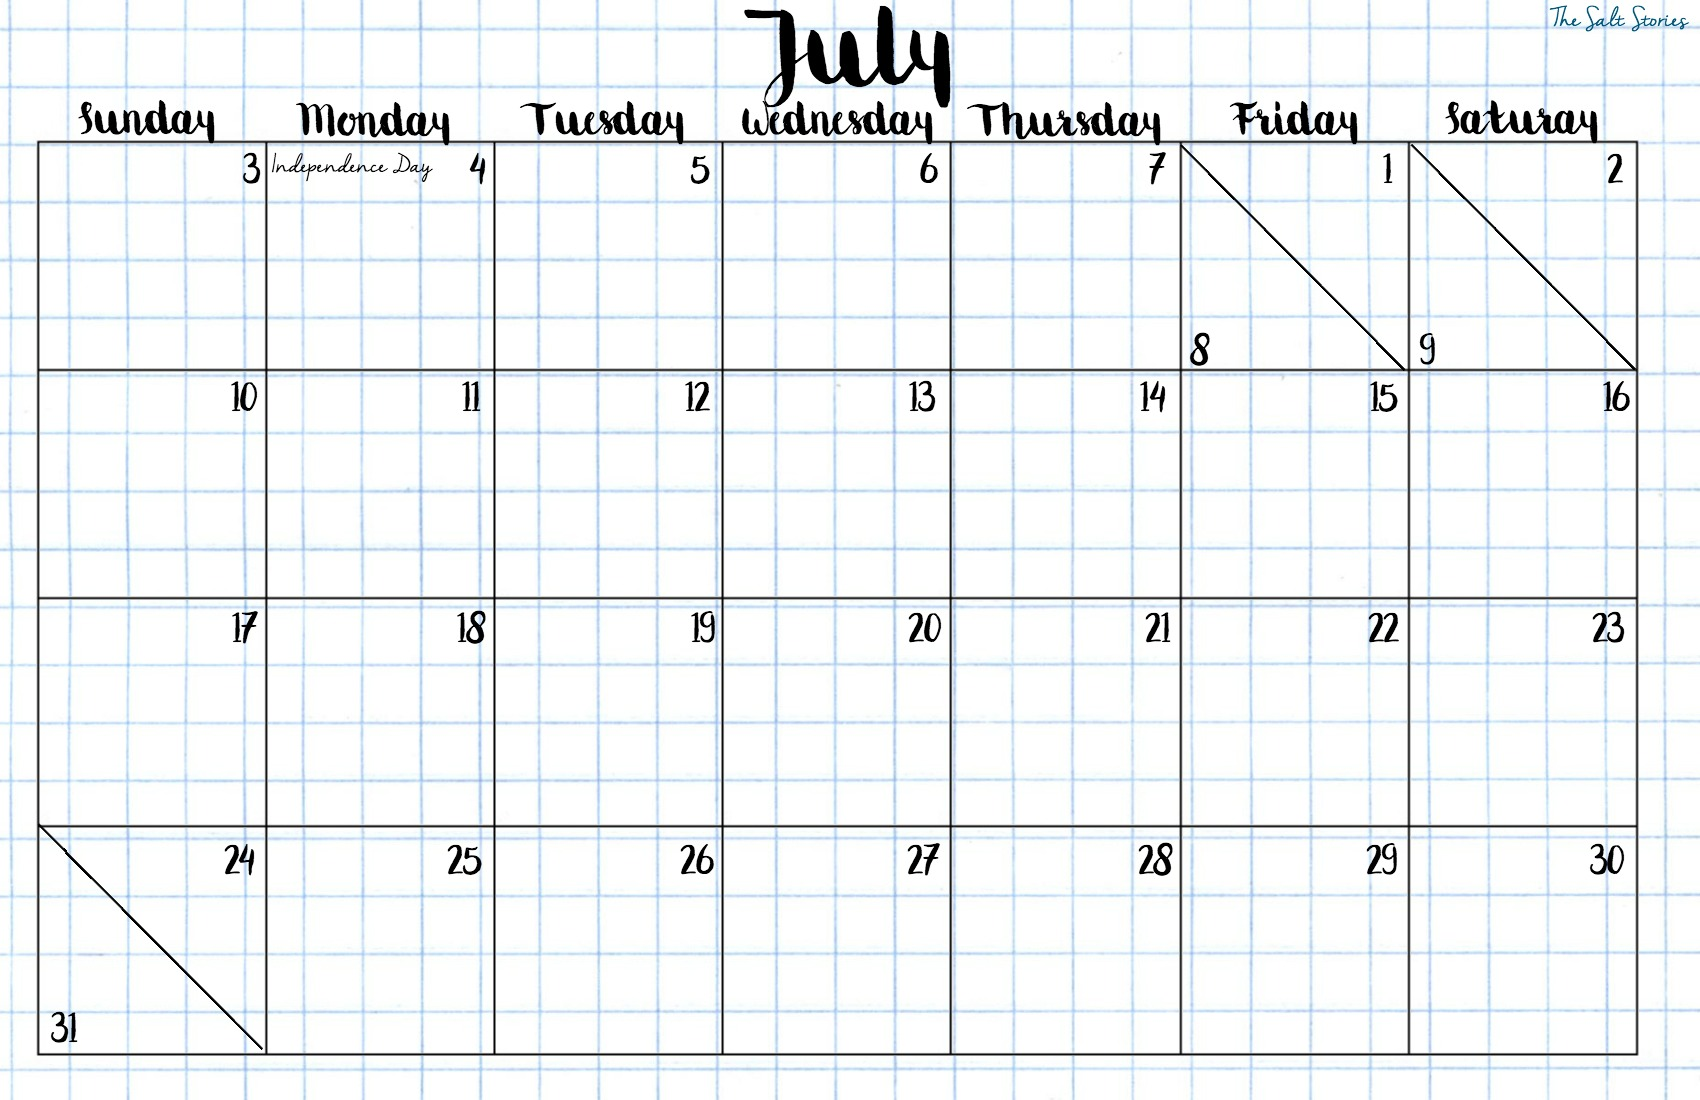 july-calendar-no-saints